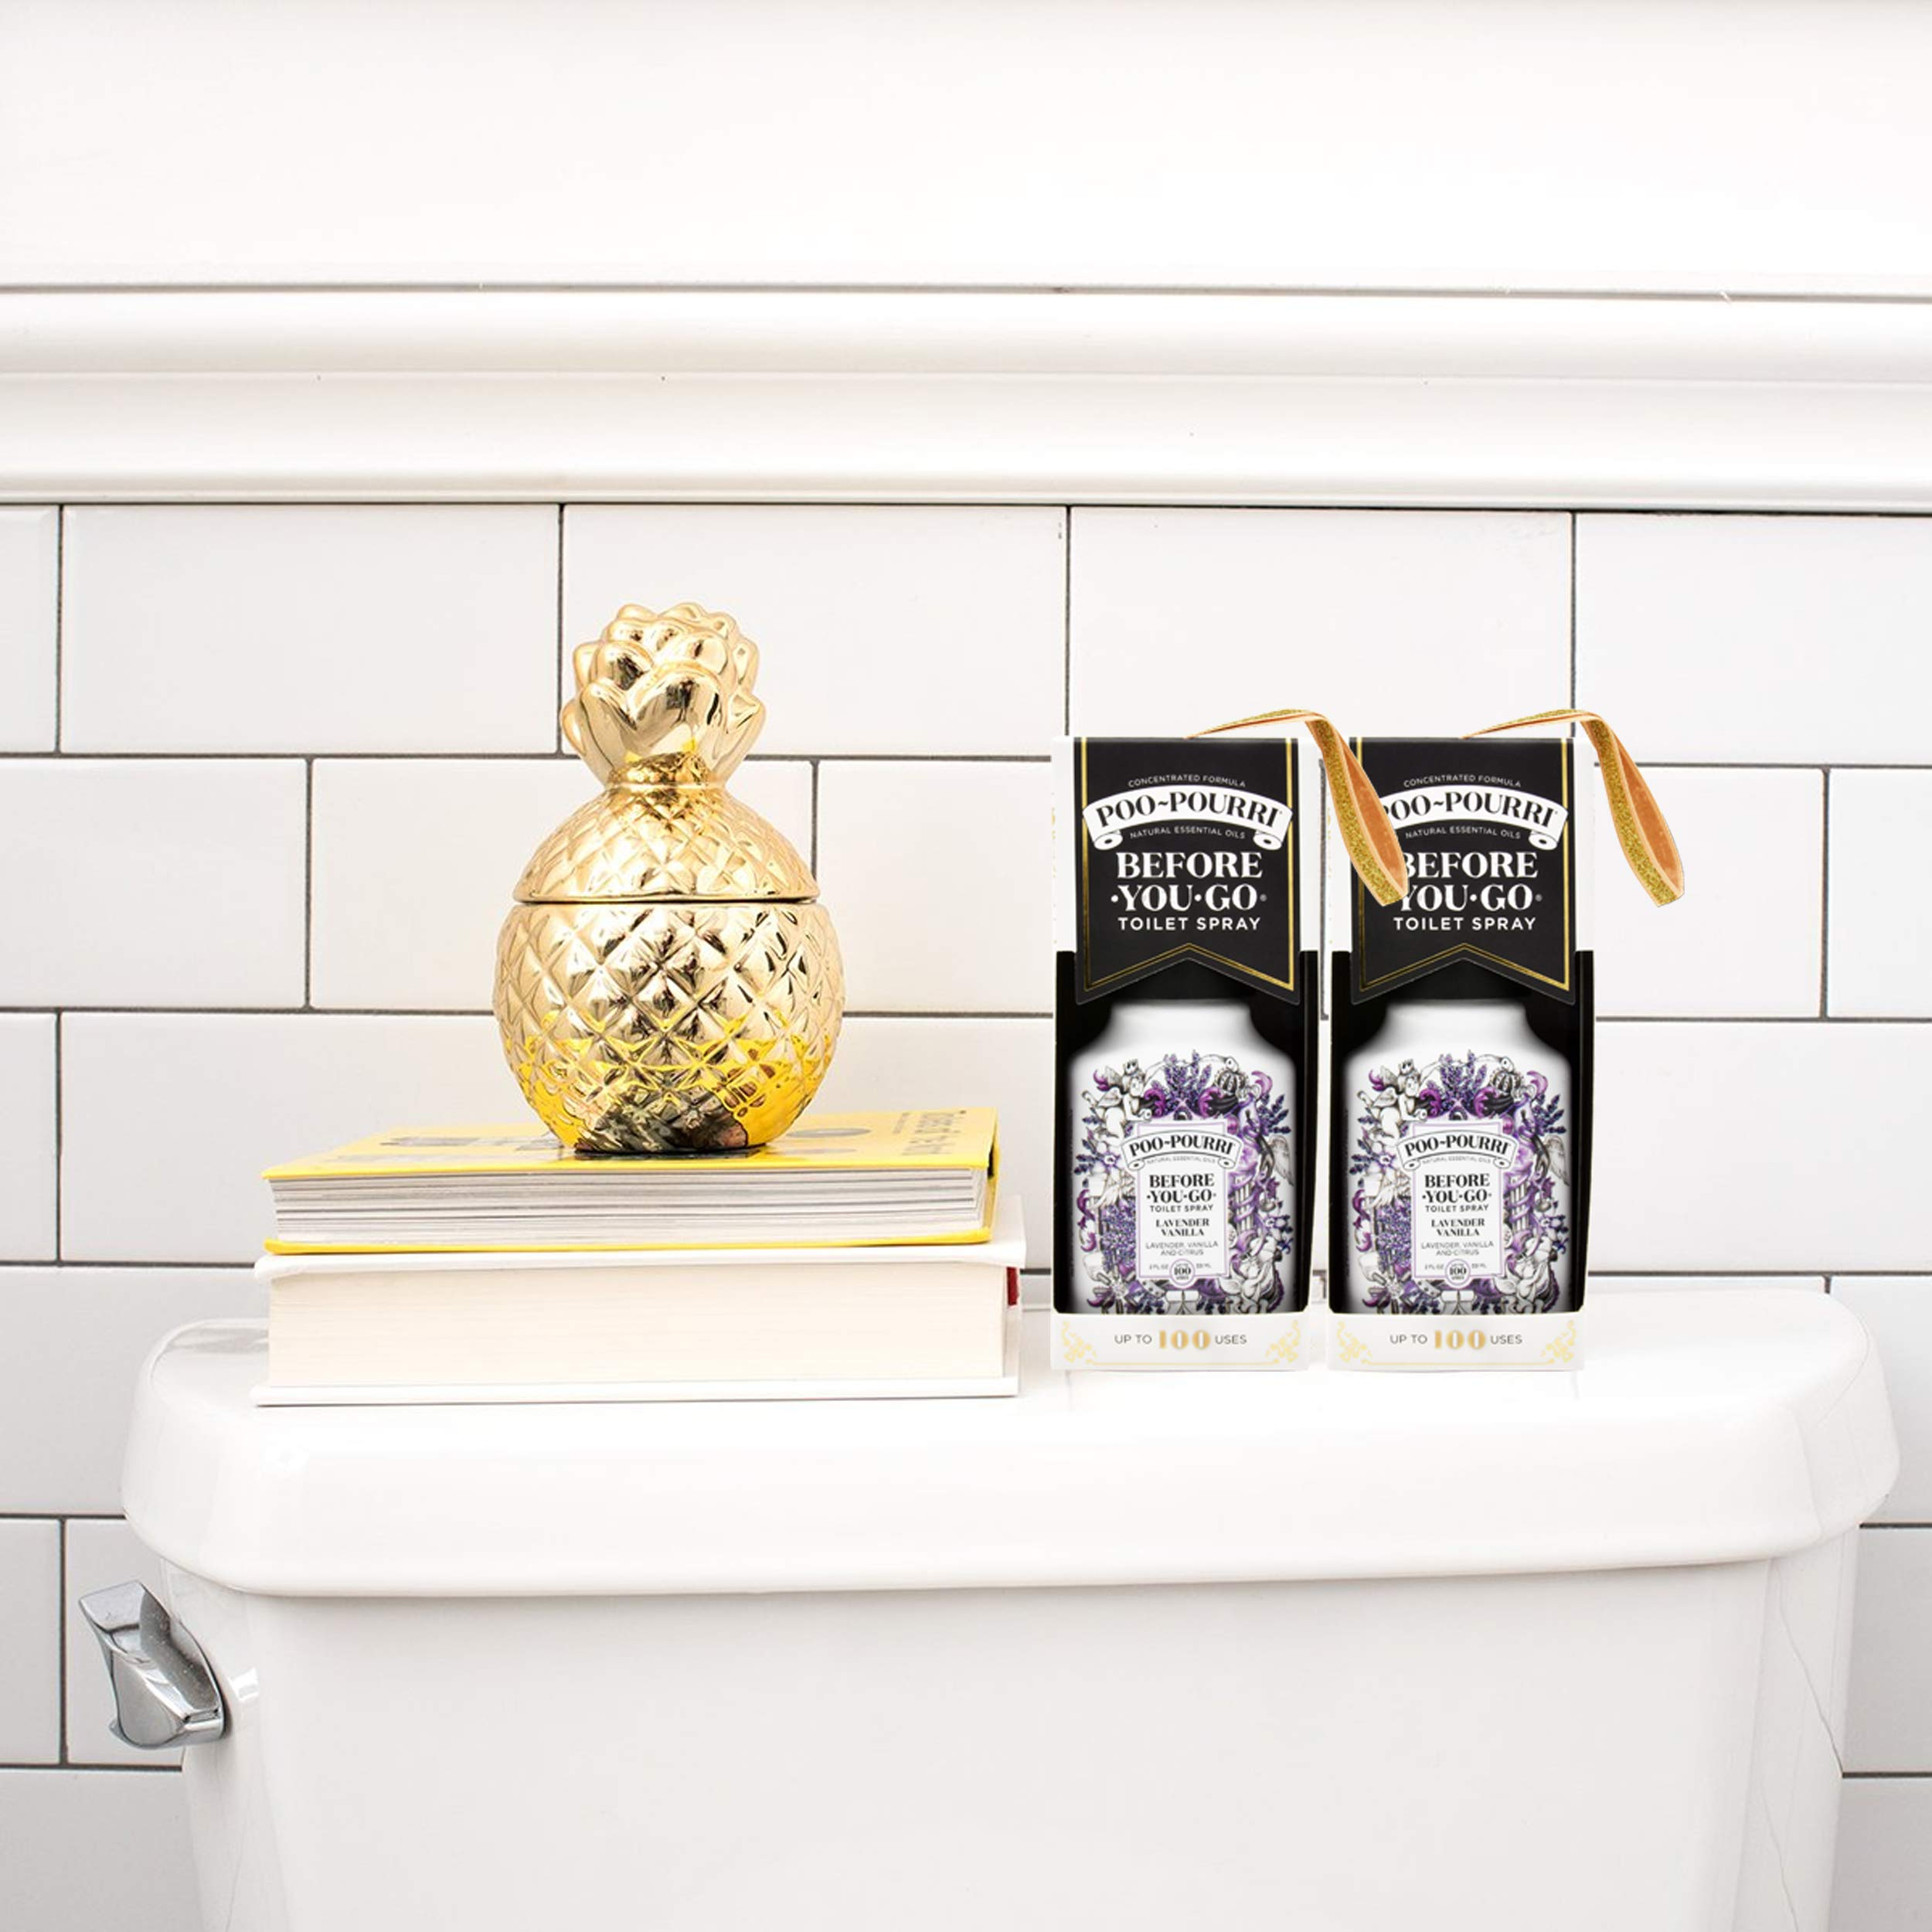 Poo-Pourri Before-You-Go Bathroom Spray, Lavender Vanilla - 2 Ounce, 2 Pack with Ornament Box   by Poo-Pourri (Image #4)